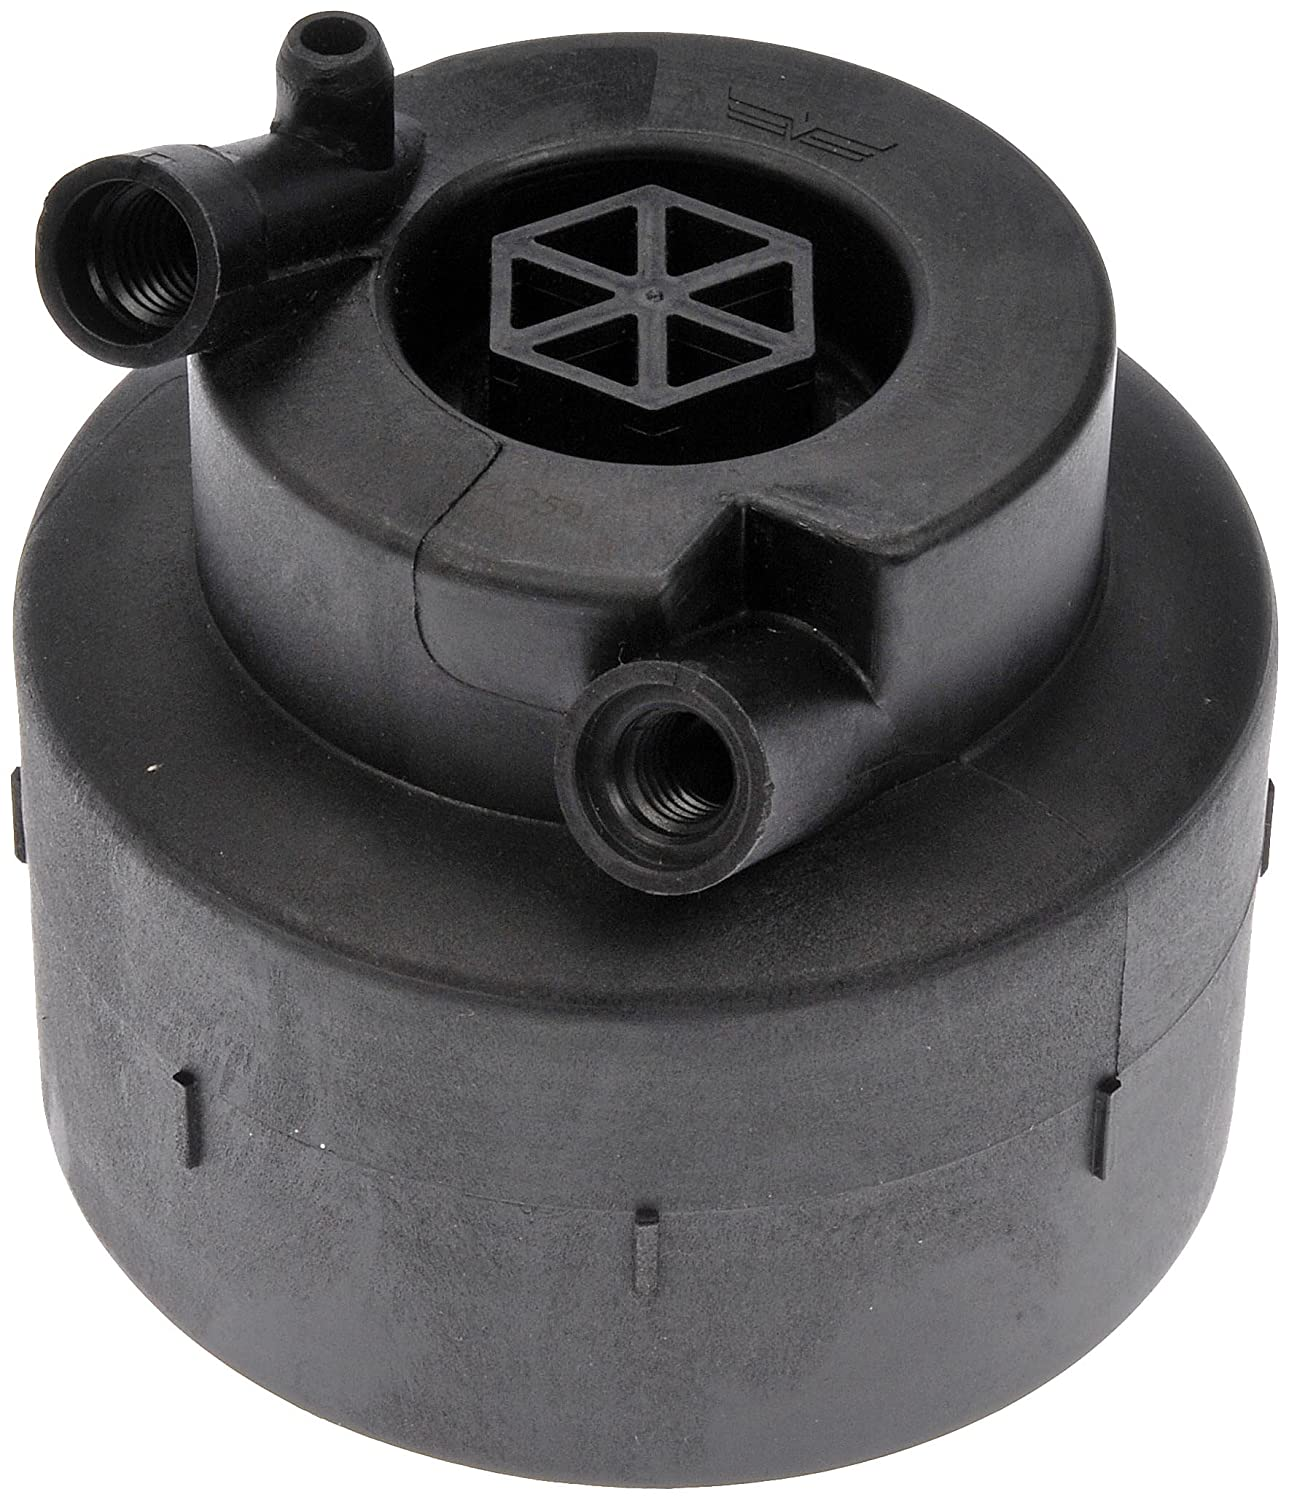 Dorman 904 244 Fuel Filter Cap Automotive 1992 Dodge Ram Location